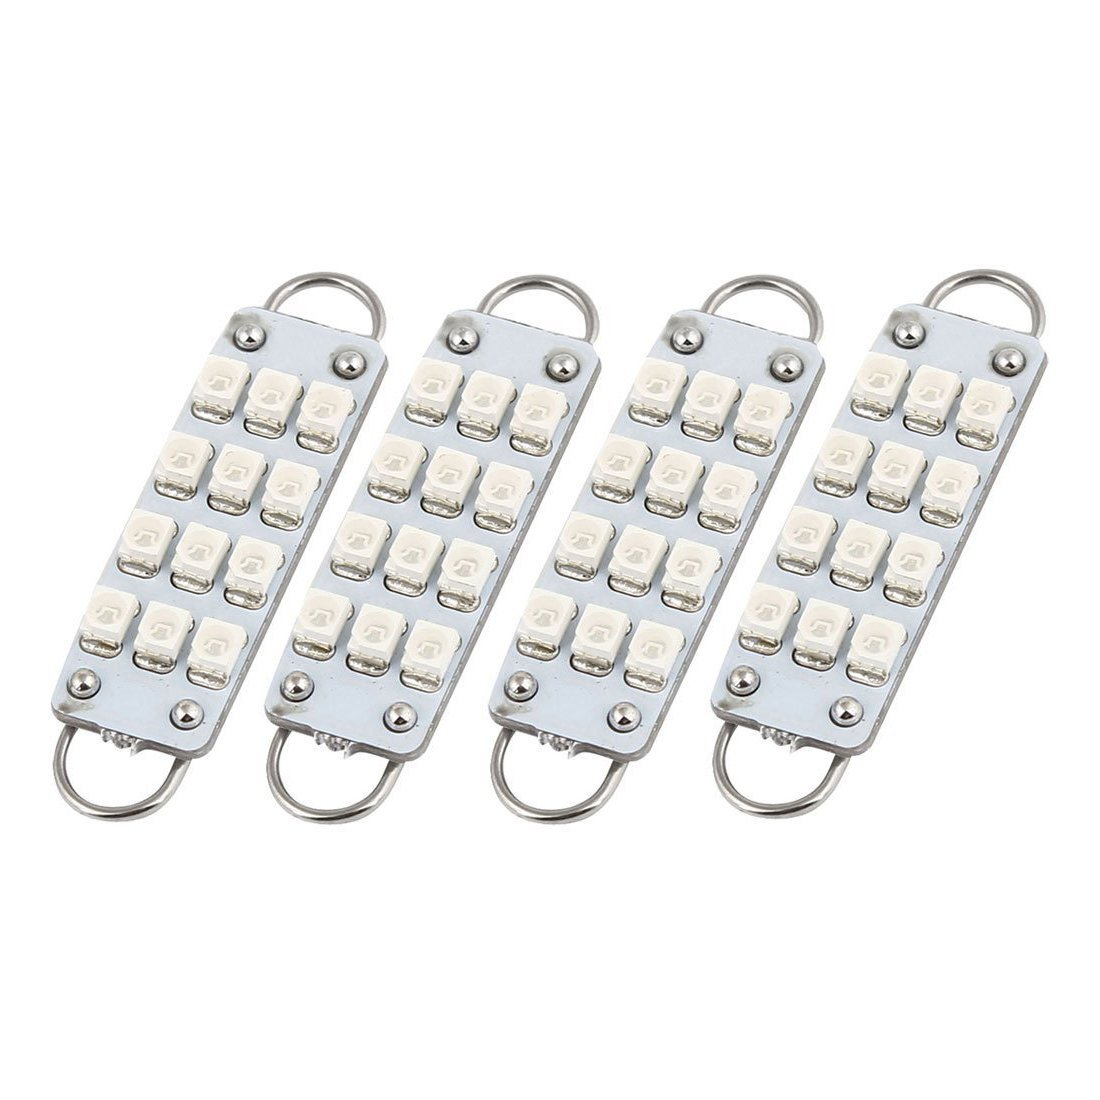 LED Light - SODIAL(R) 4PCS 44mm 12-SMD Rigid Loop Blue Festoon LED Light 061953